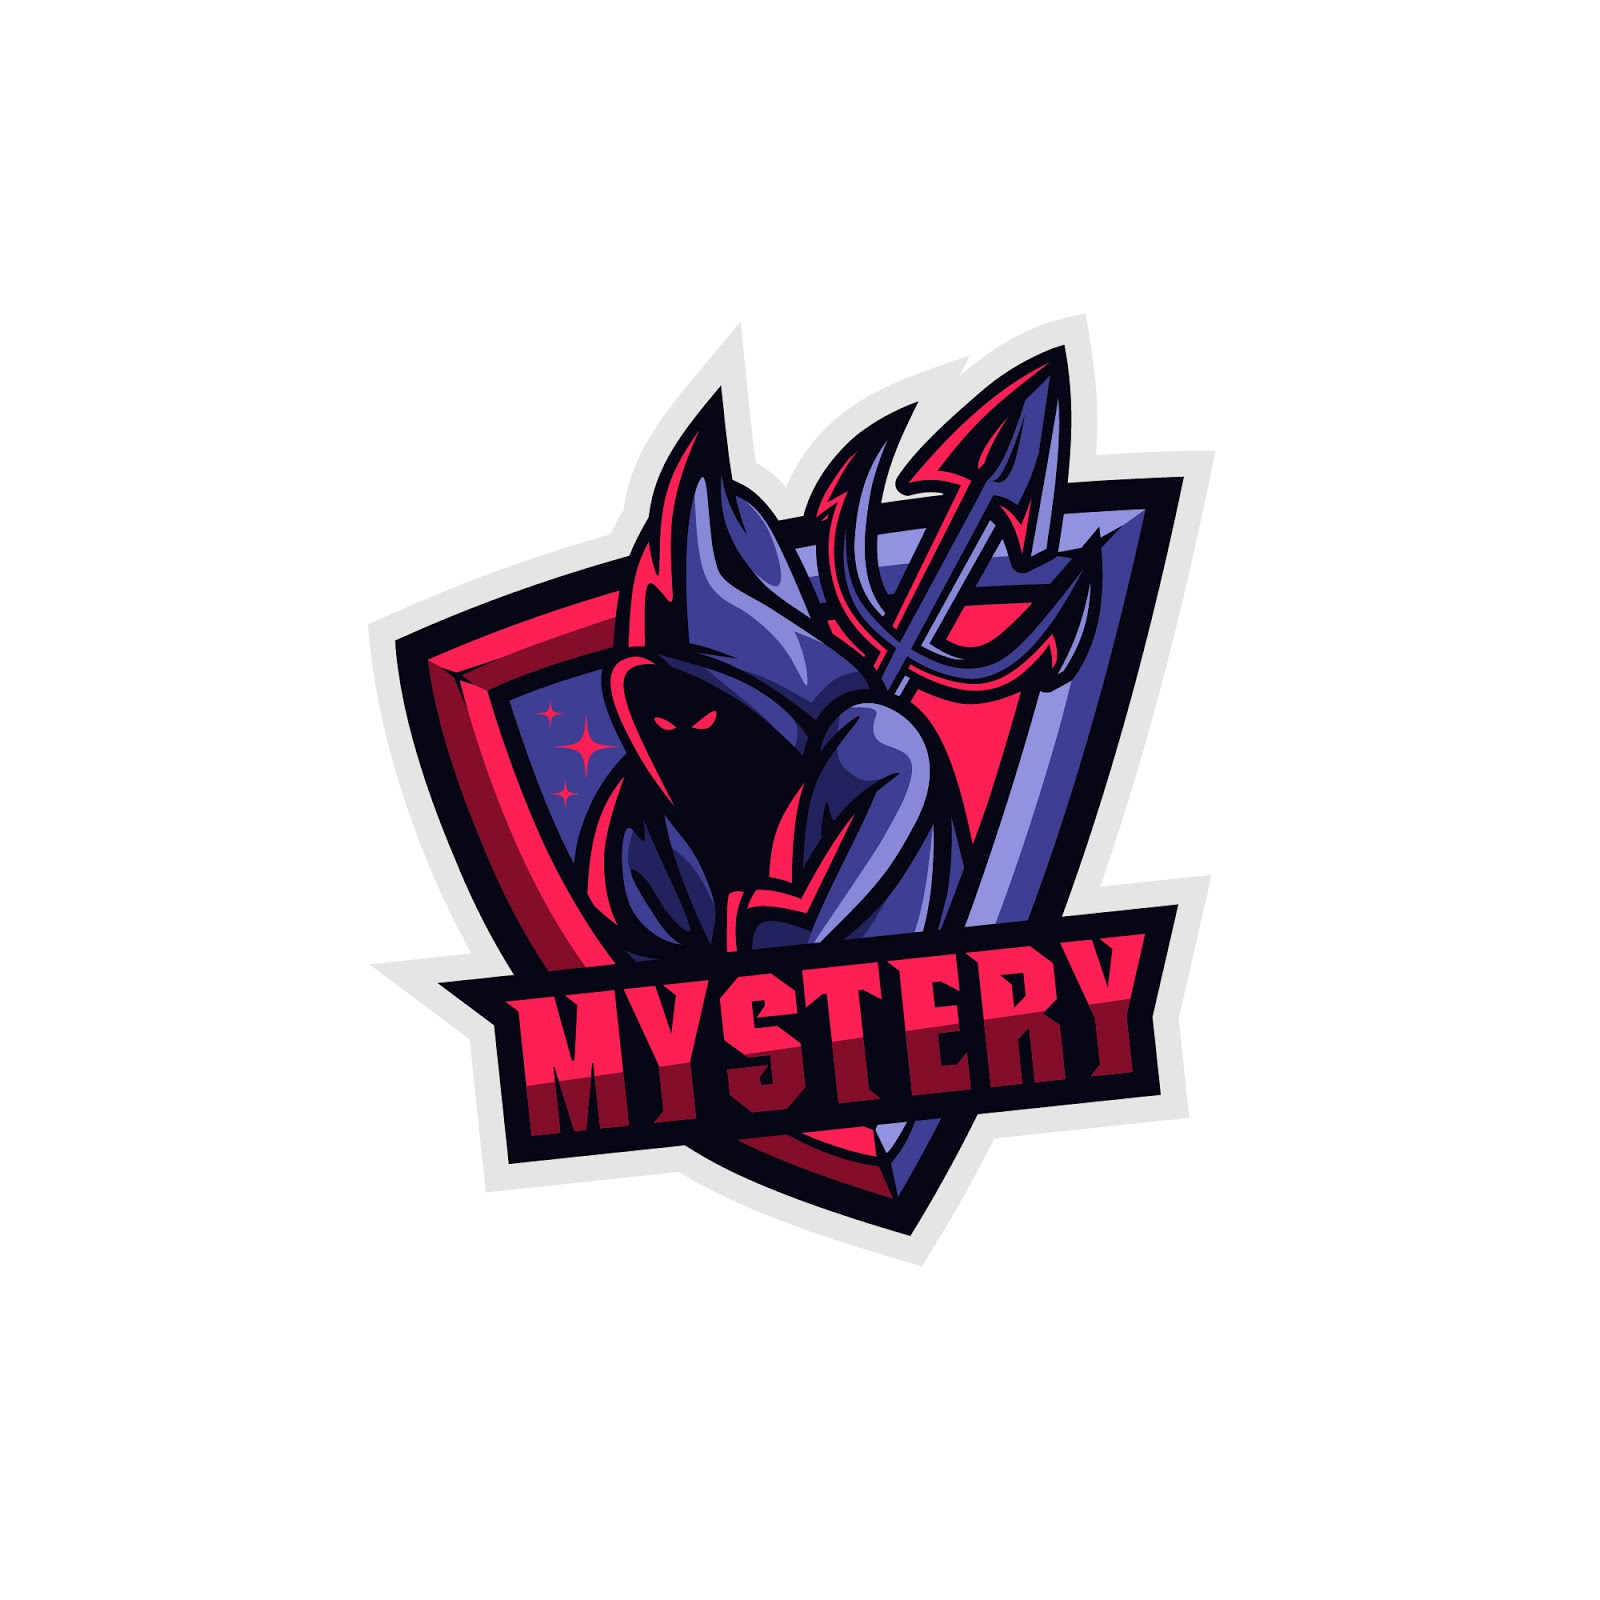 Mystery Logo Squad Free Download Vector CDR, AI, EPS and PNG Formats